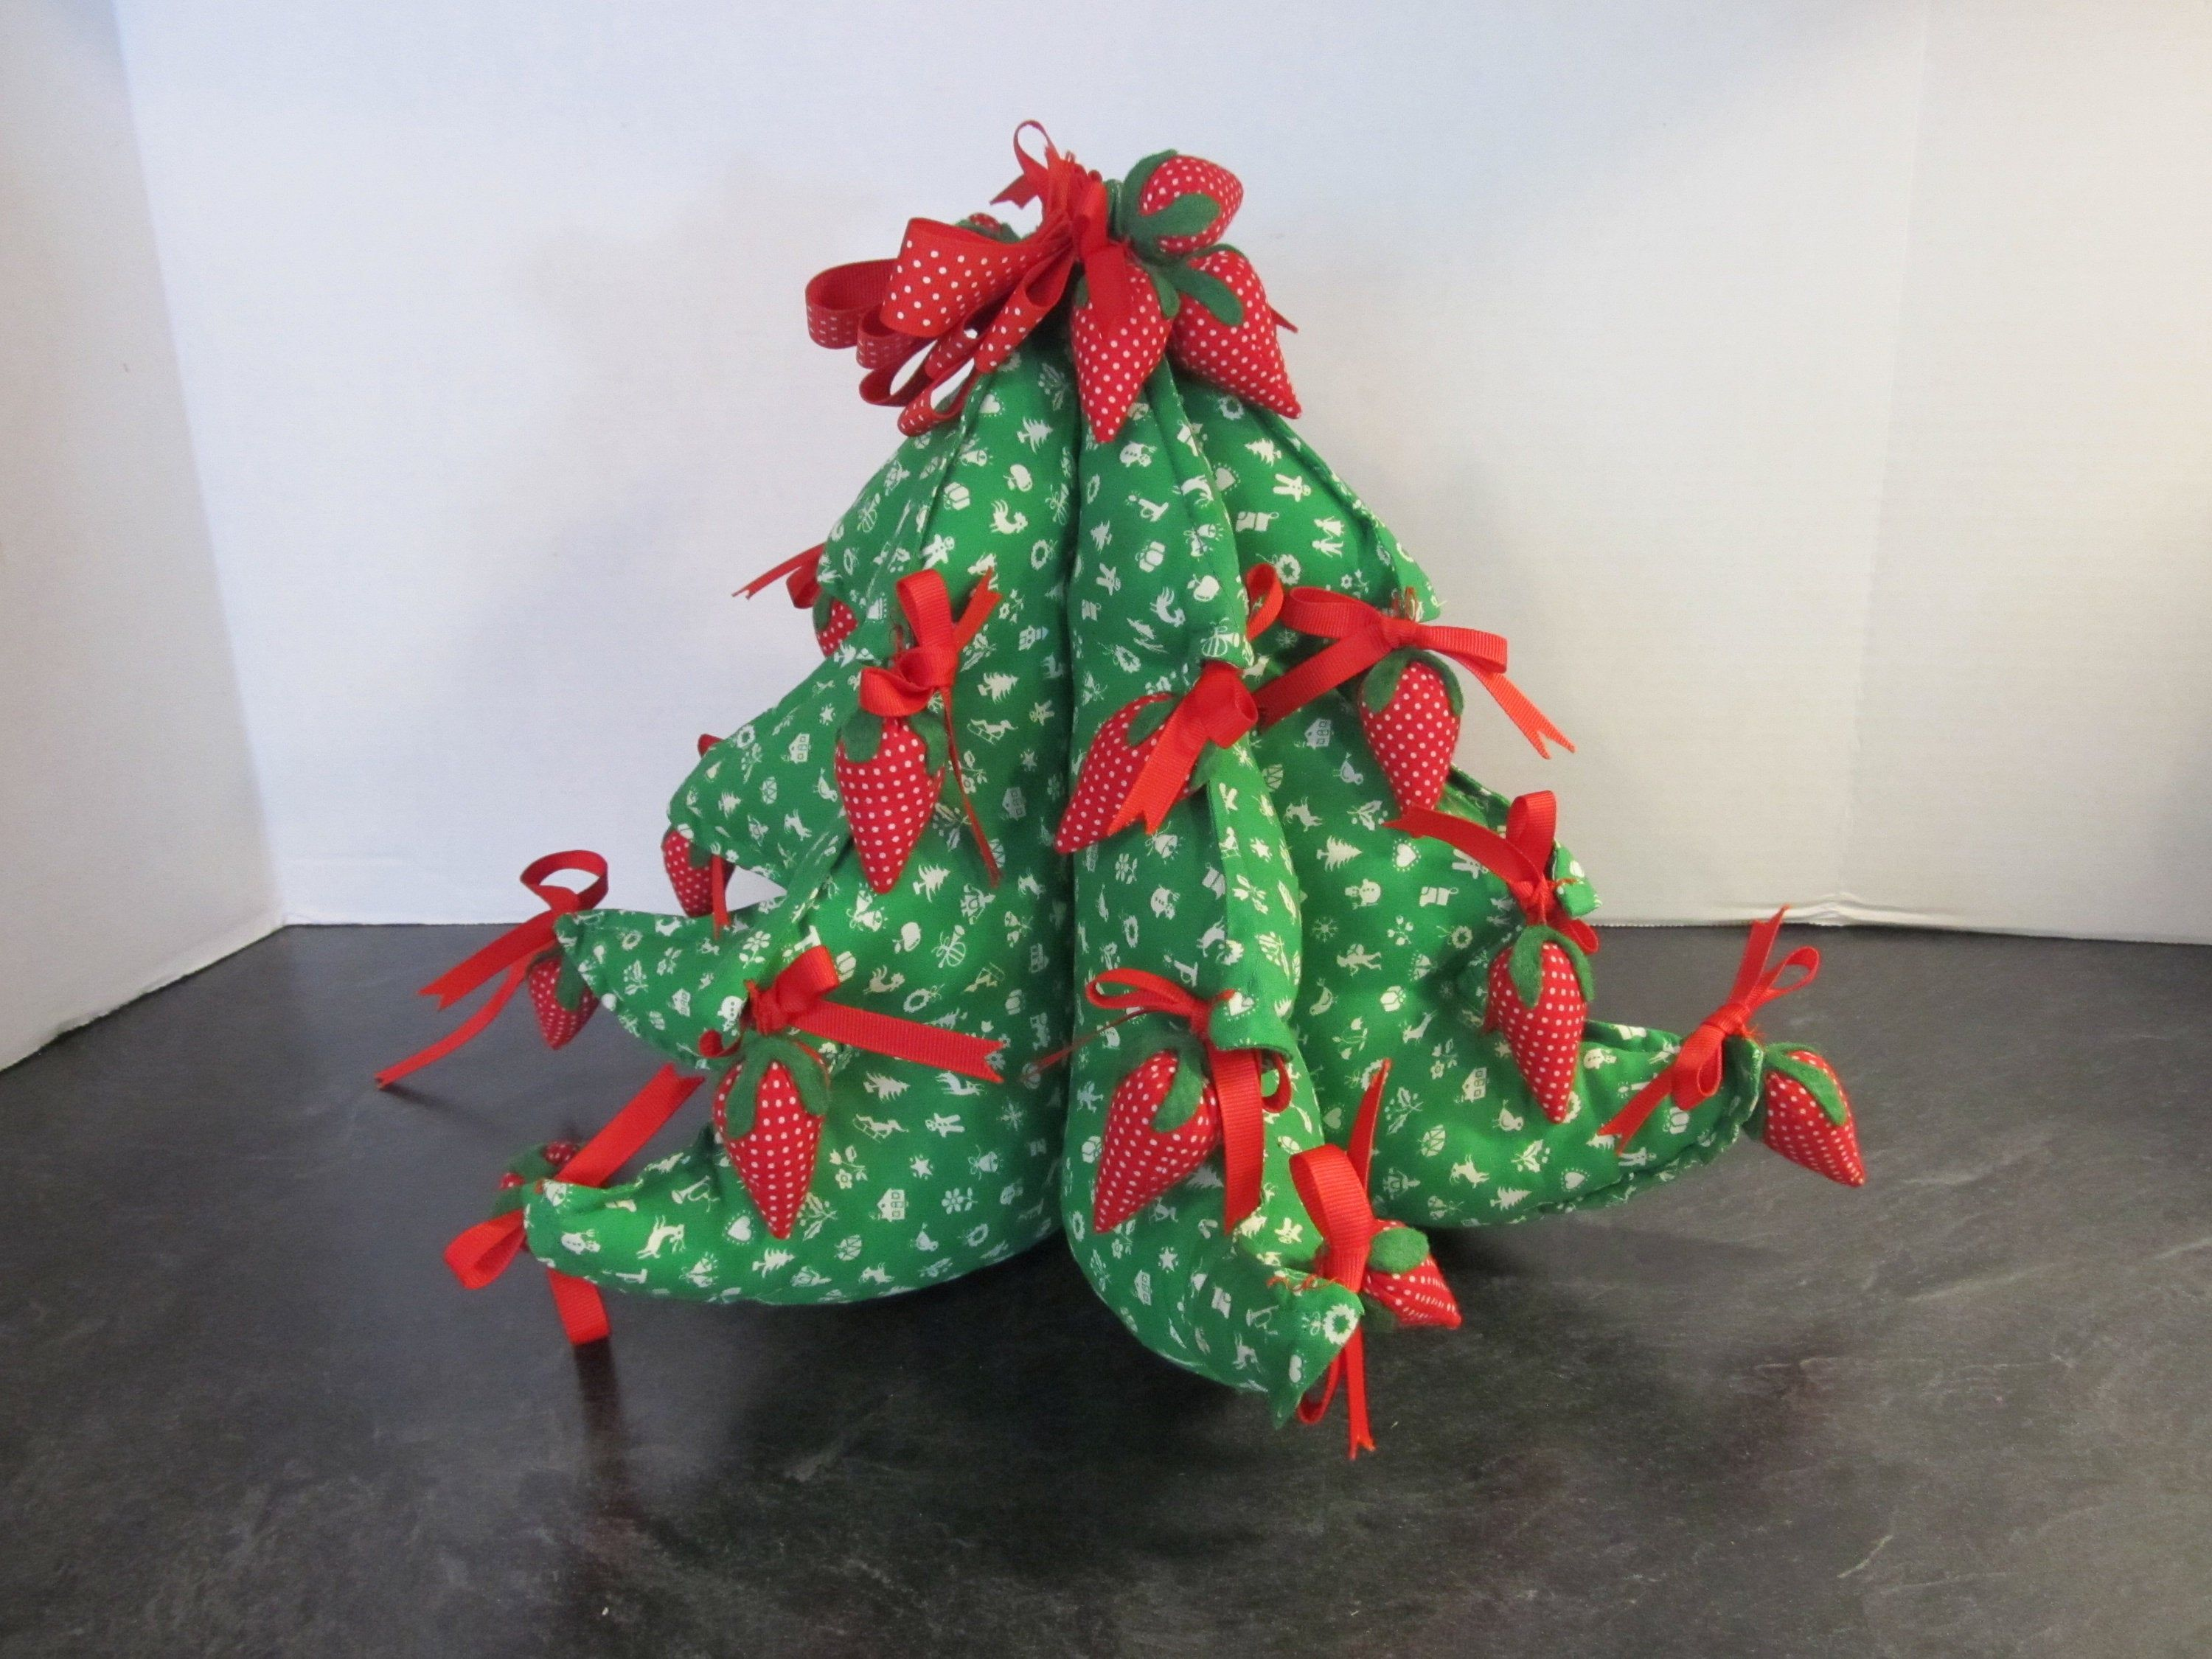 Vintage Handcrafted Stuffed Fabric 3 D 11 Tall Christmas Etsy Christmas Decorations To Make Fabric Christmas Trees Tall Christmas Trees